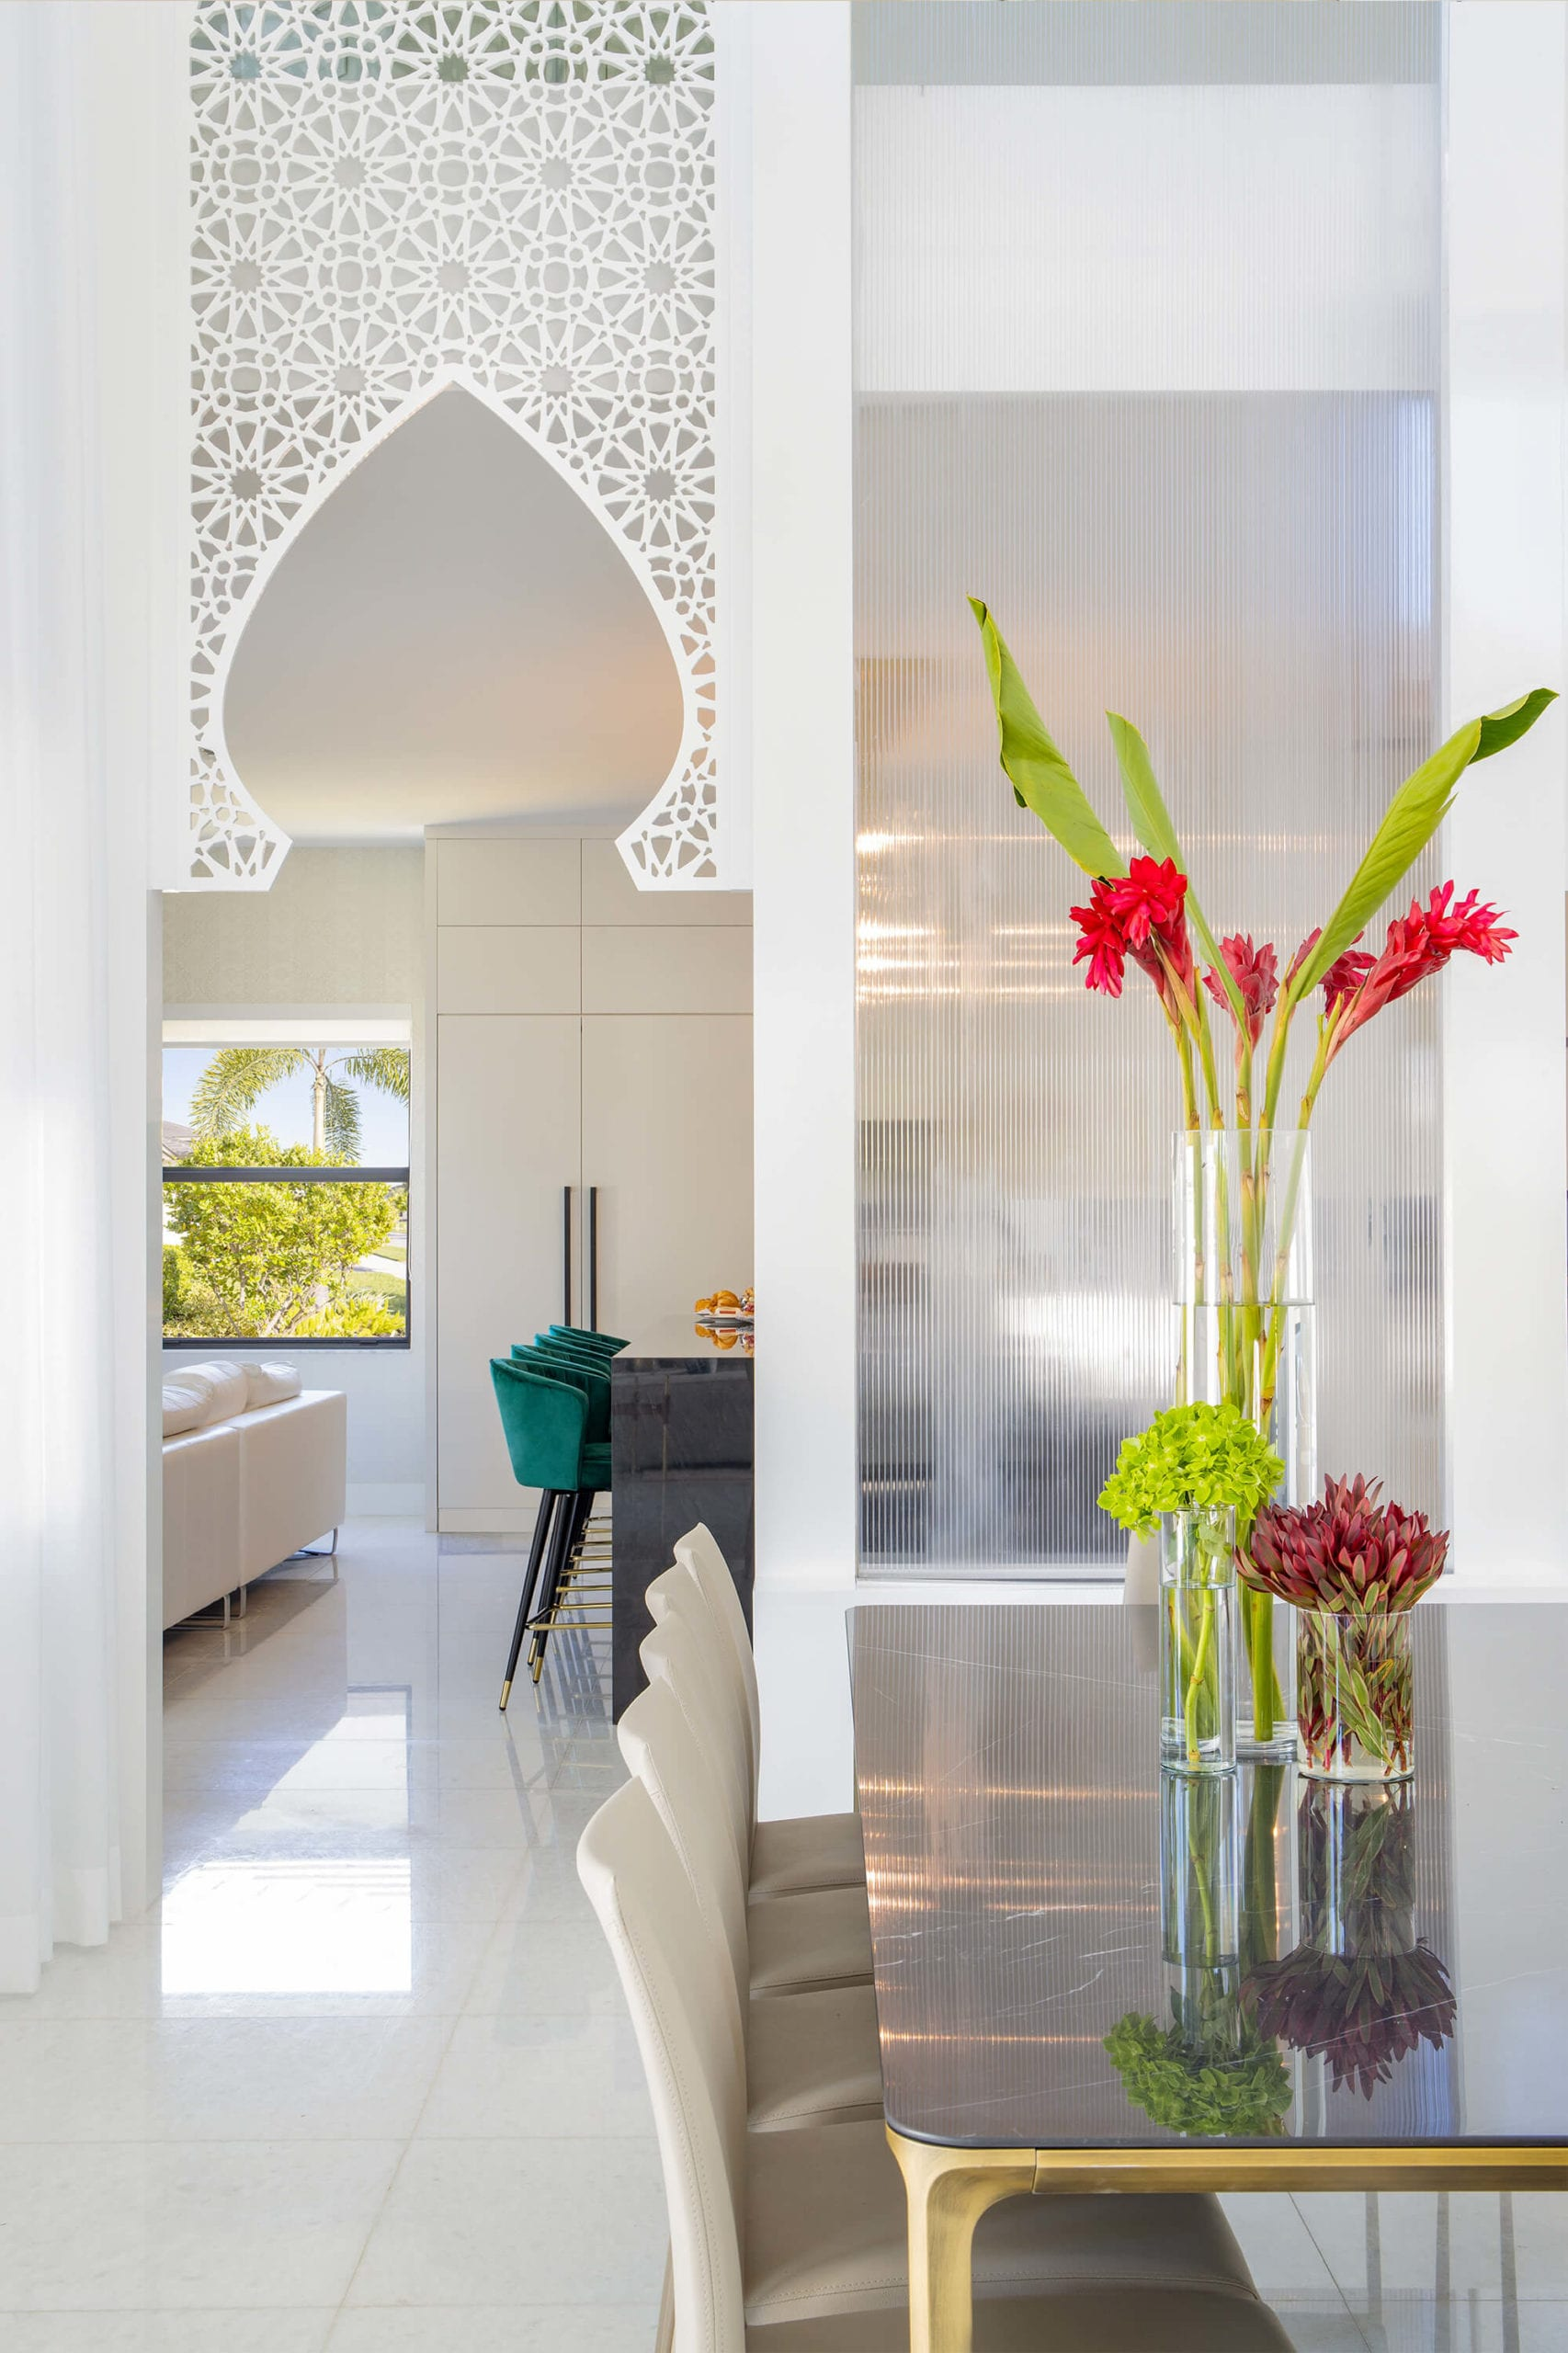 Arabic Residence by Interiors by Maite Granda.